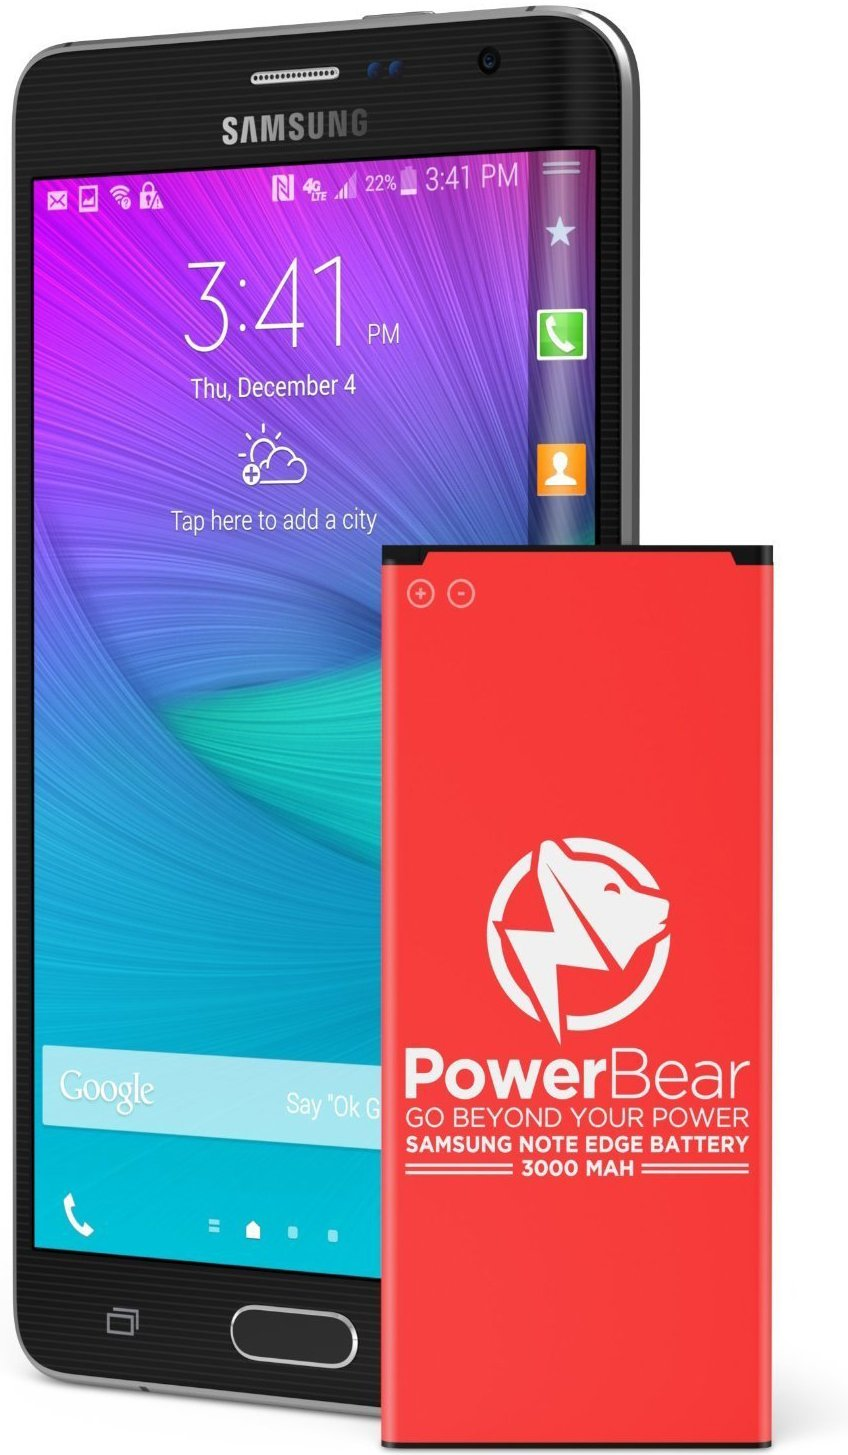 PowerBear Note Edge Battery | 3000 mAh Li-Ion Battery for The Samsung Galaxy Note Edge [N915 N915U LTE AT&T N915A Verizon N915V Sprint N915P T-Mobile N915T] Note Edge Spare Battery[24 Month Warranty] FBA_PB-RBNE-01